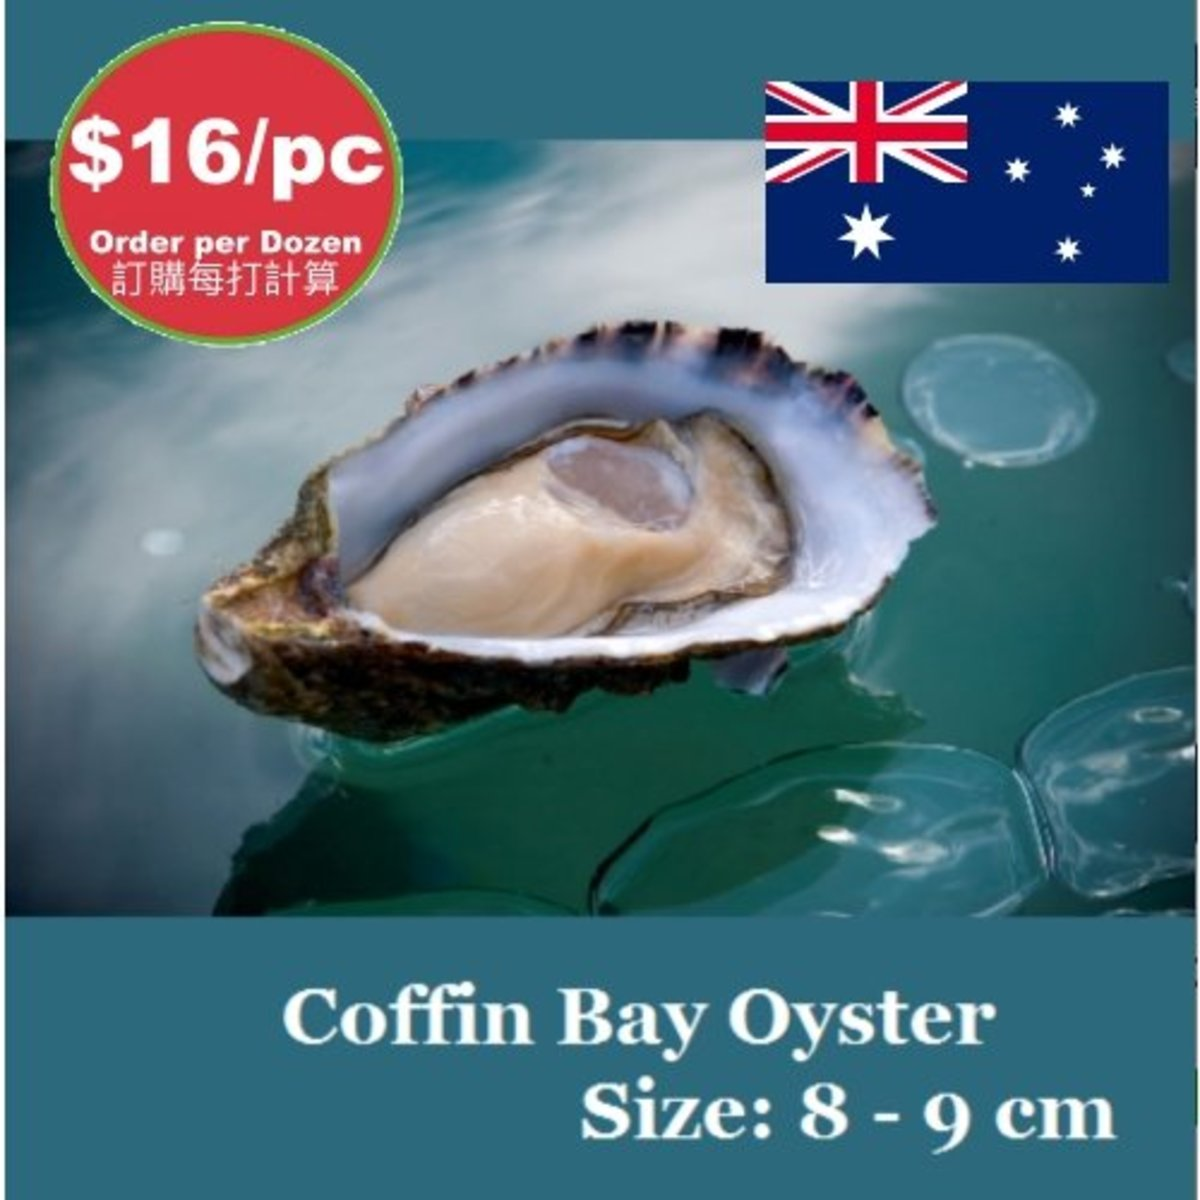 8-9 cm length Australian Coffin Bay Live Oyster, price is for 12 pcs.